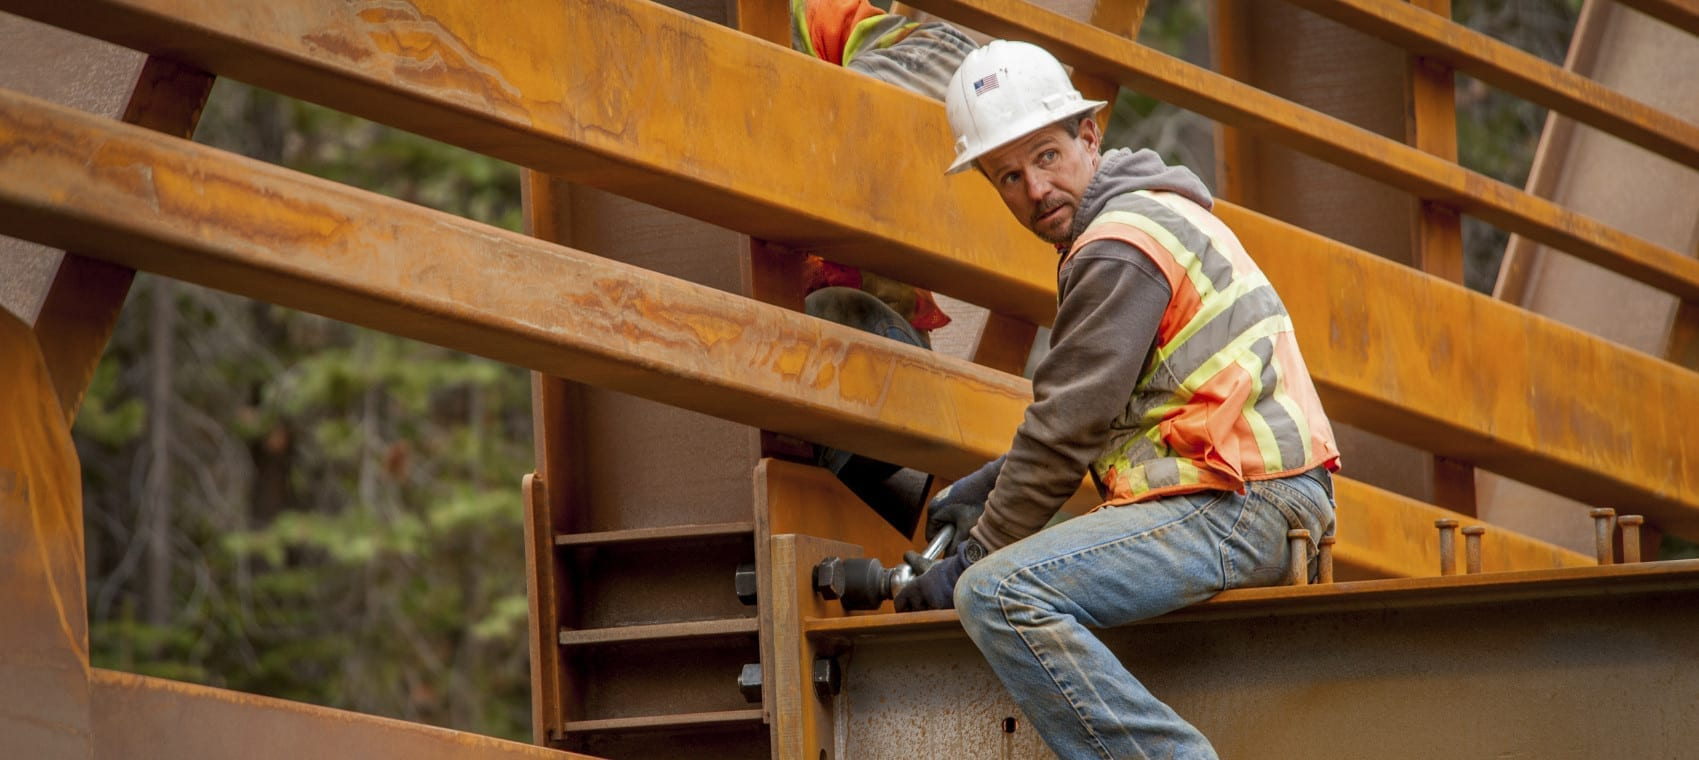 Construction Worker Working On A Bridge Stock Photo